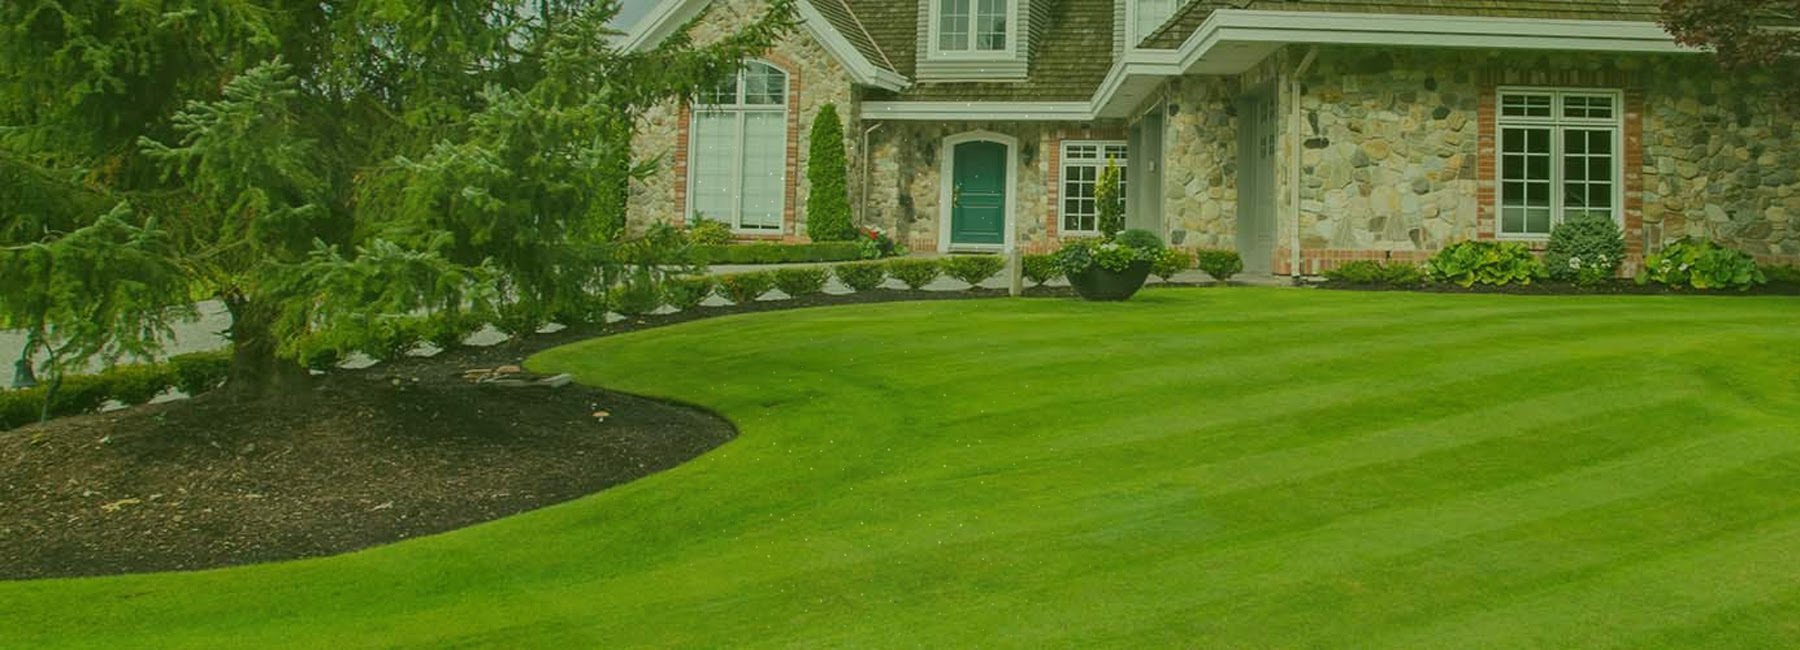 Landscaping Maryland Landscaping Design Stone Work Md Dc